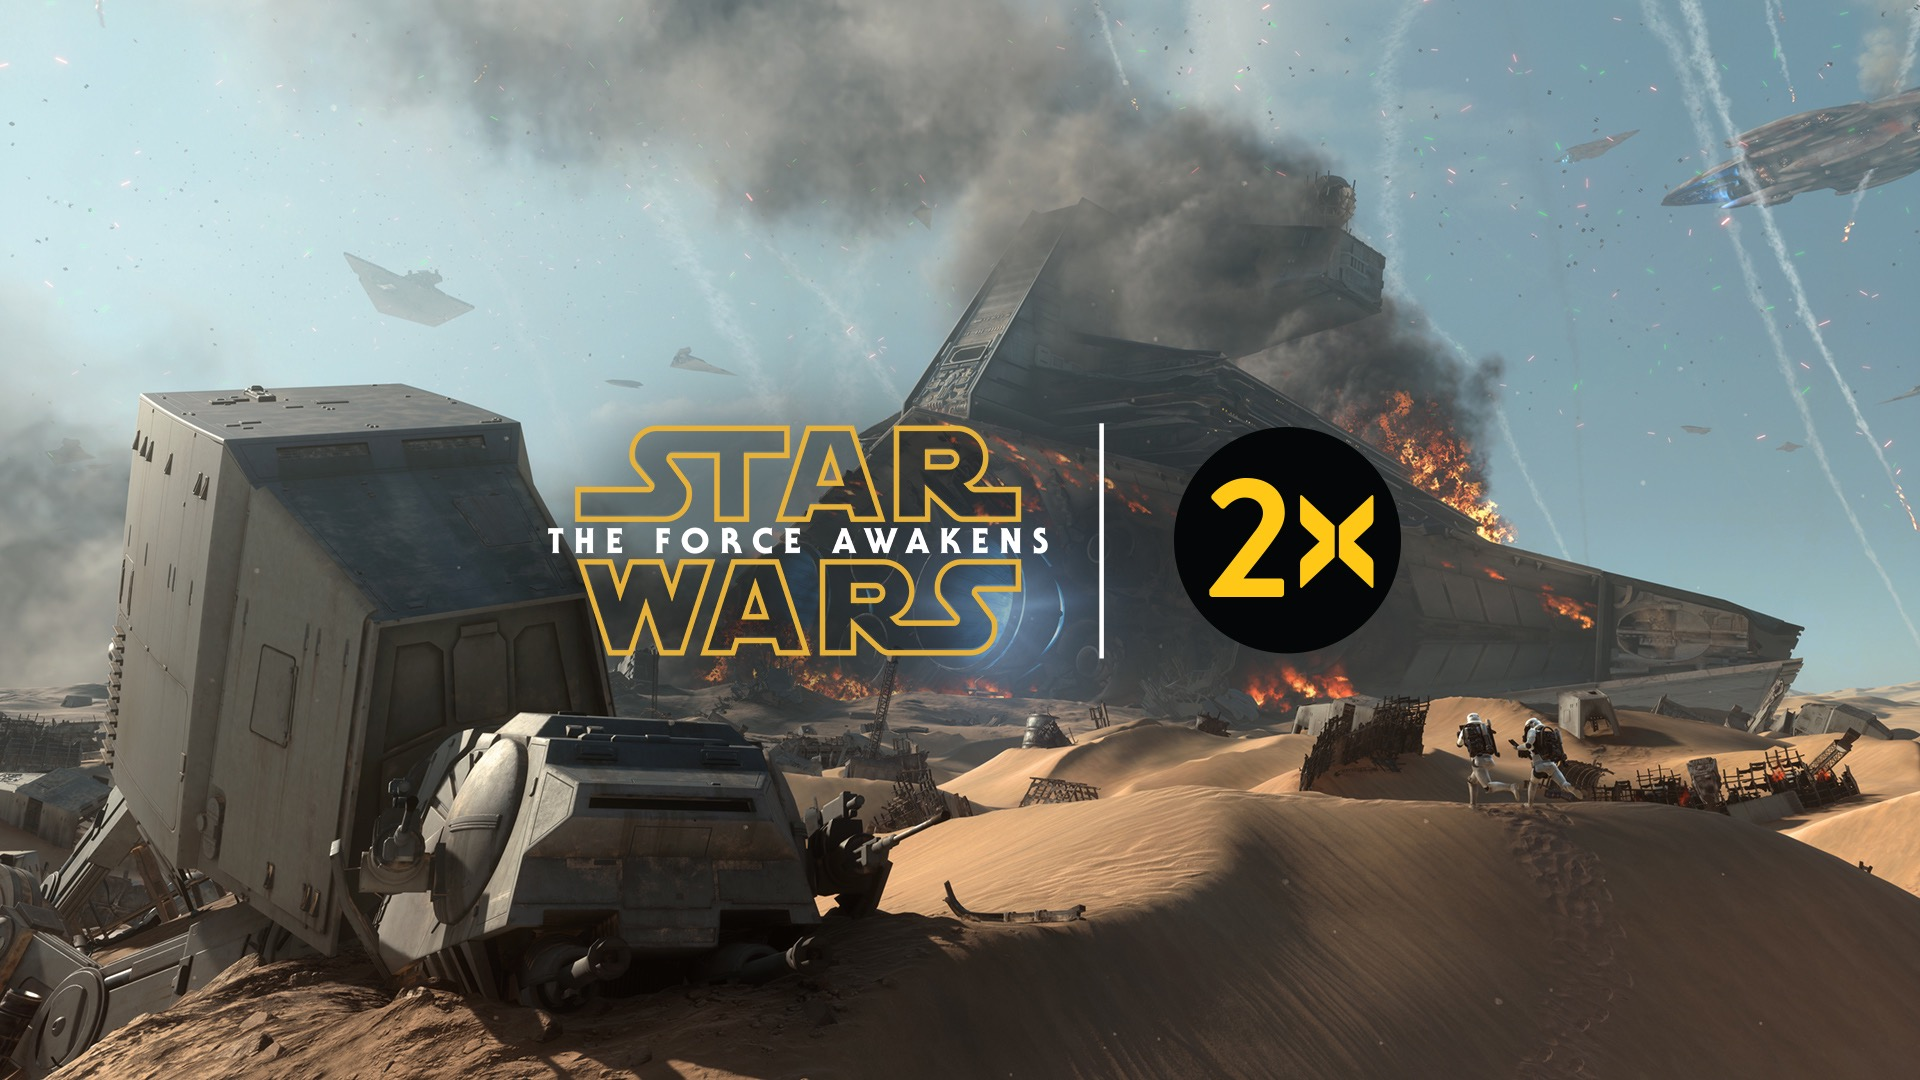 star wars battlefront gets 2x xp to celebrate the force